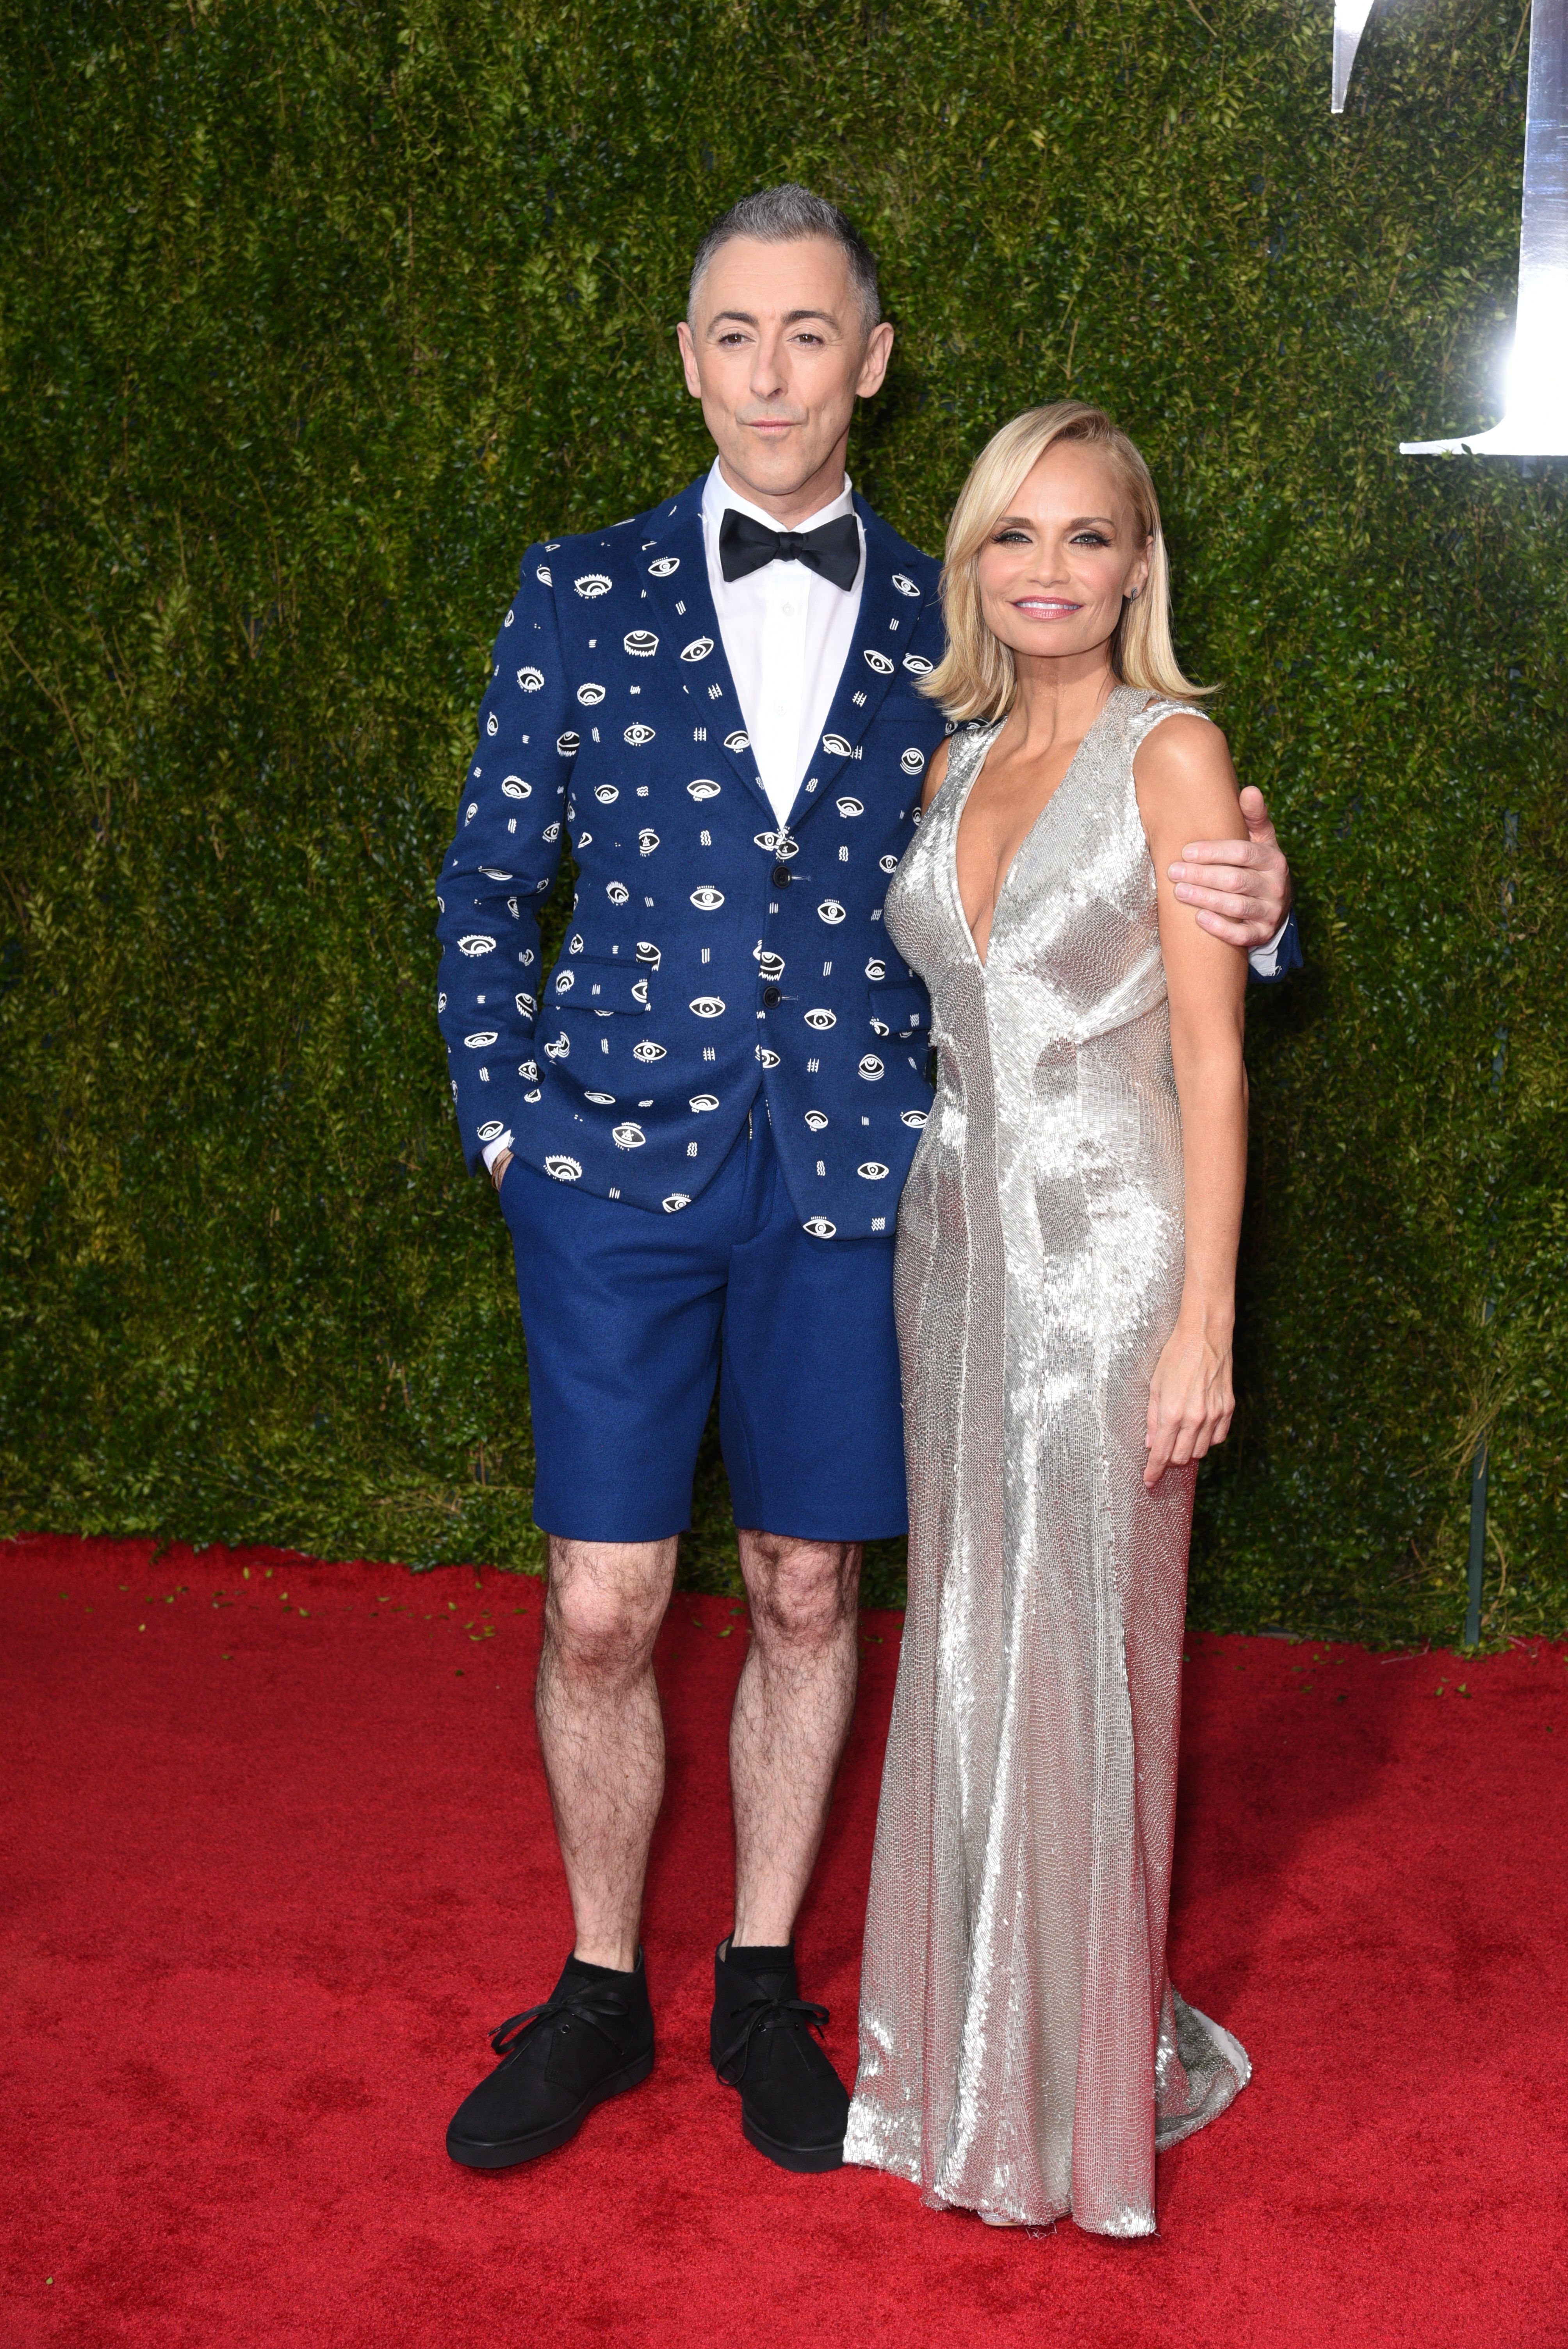 Guess how much Tony Awards hosts make ...